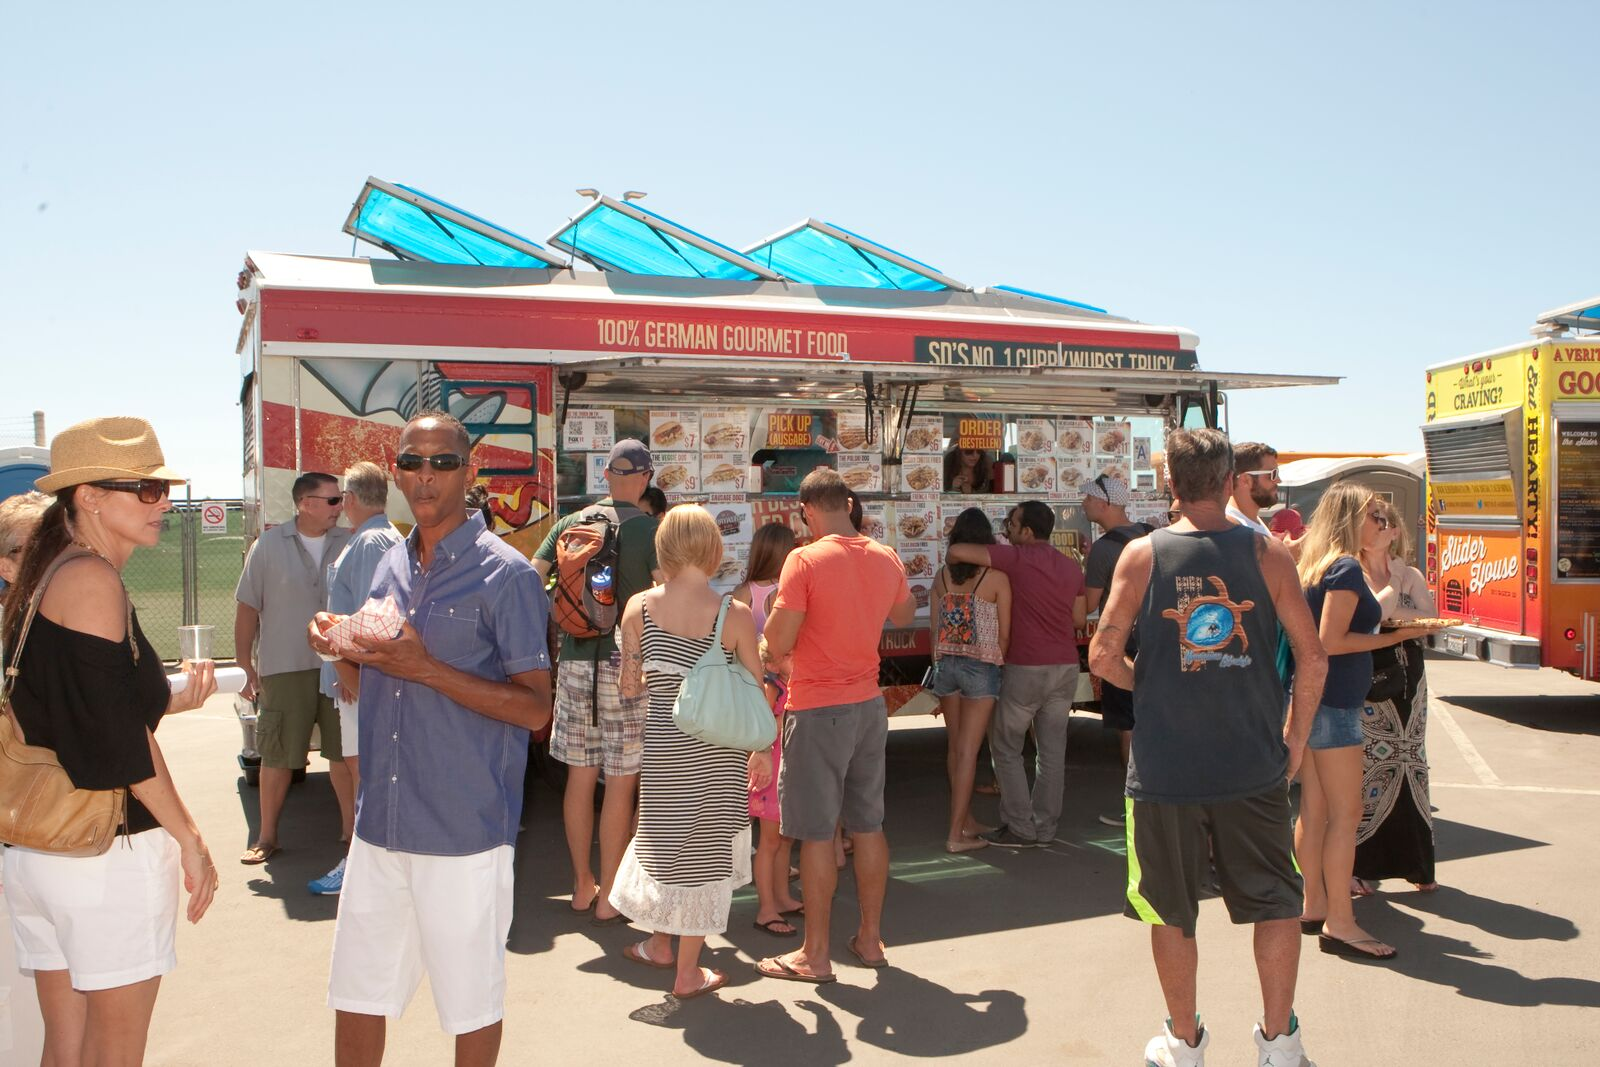 5th Annual Food Truck Festival at Del Mar Racetrack